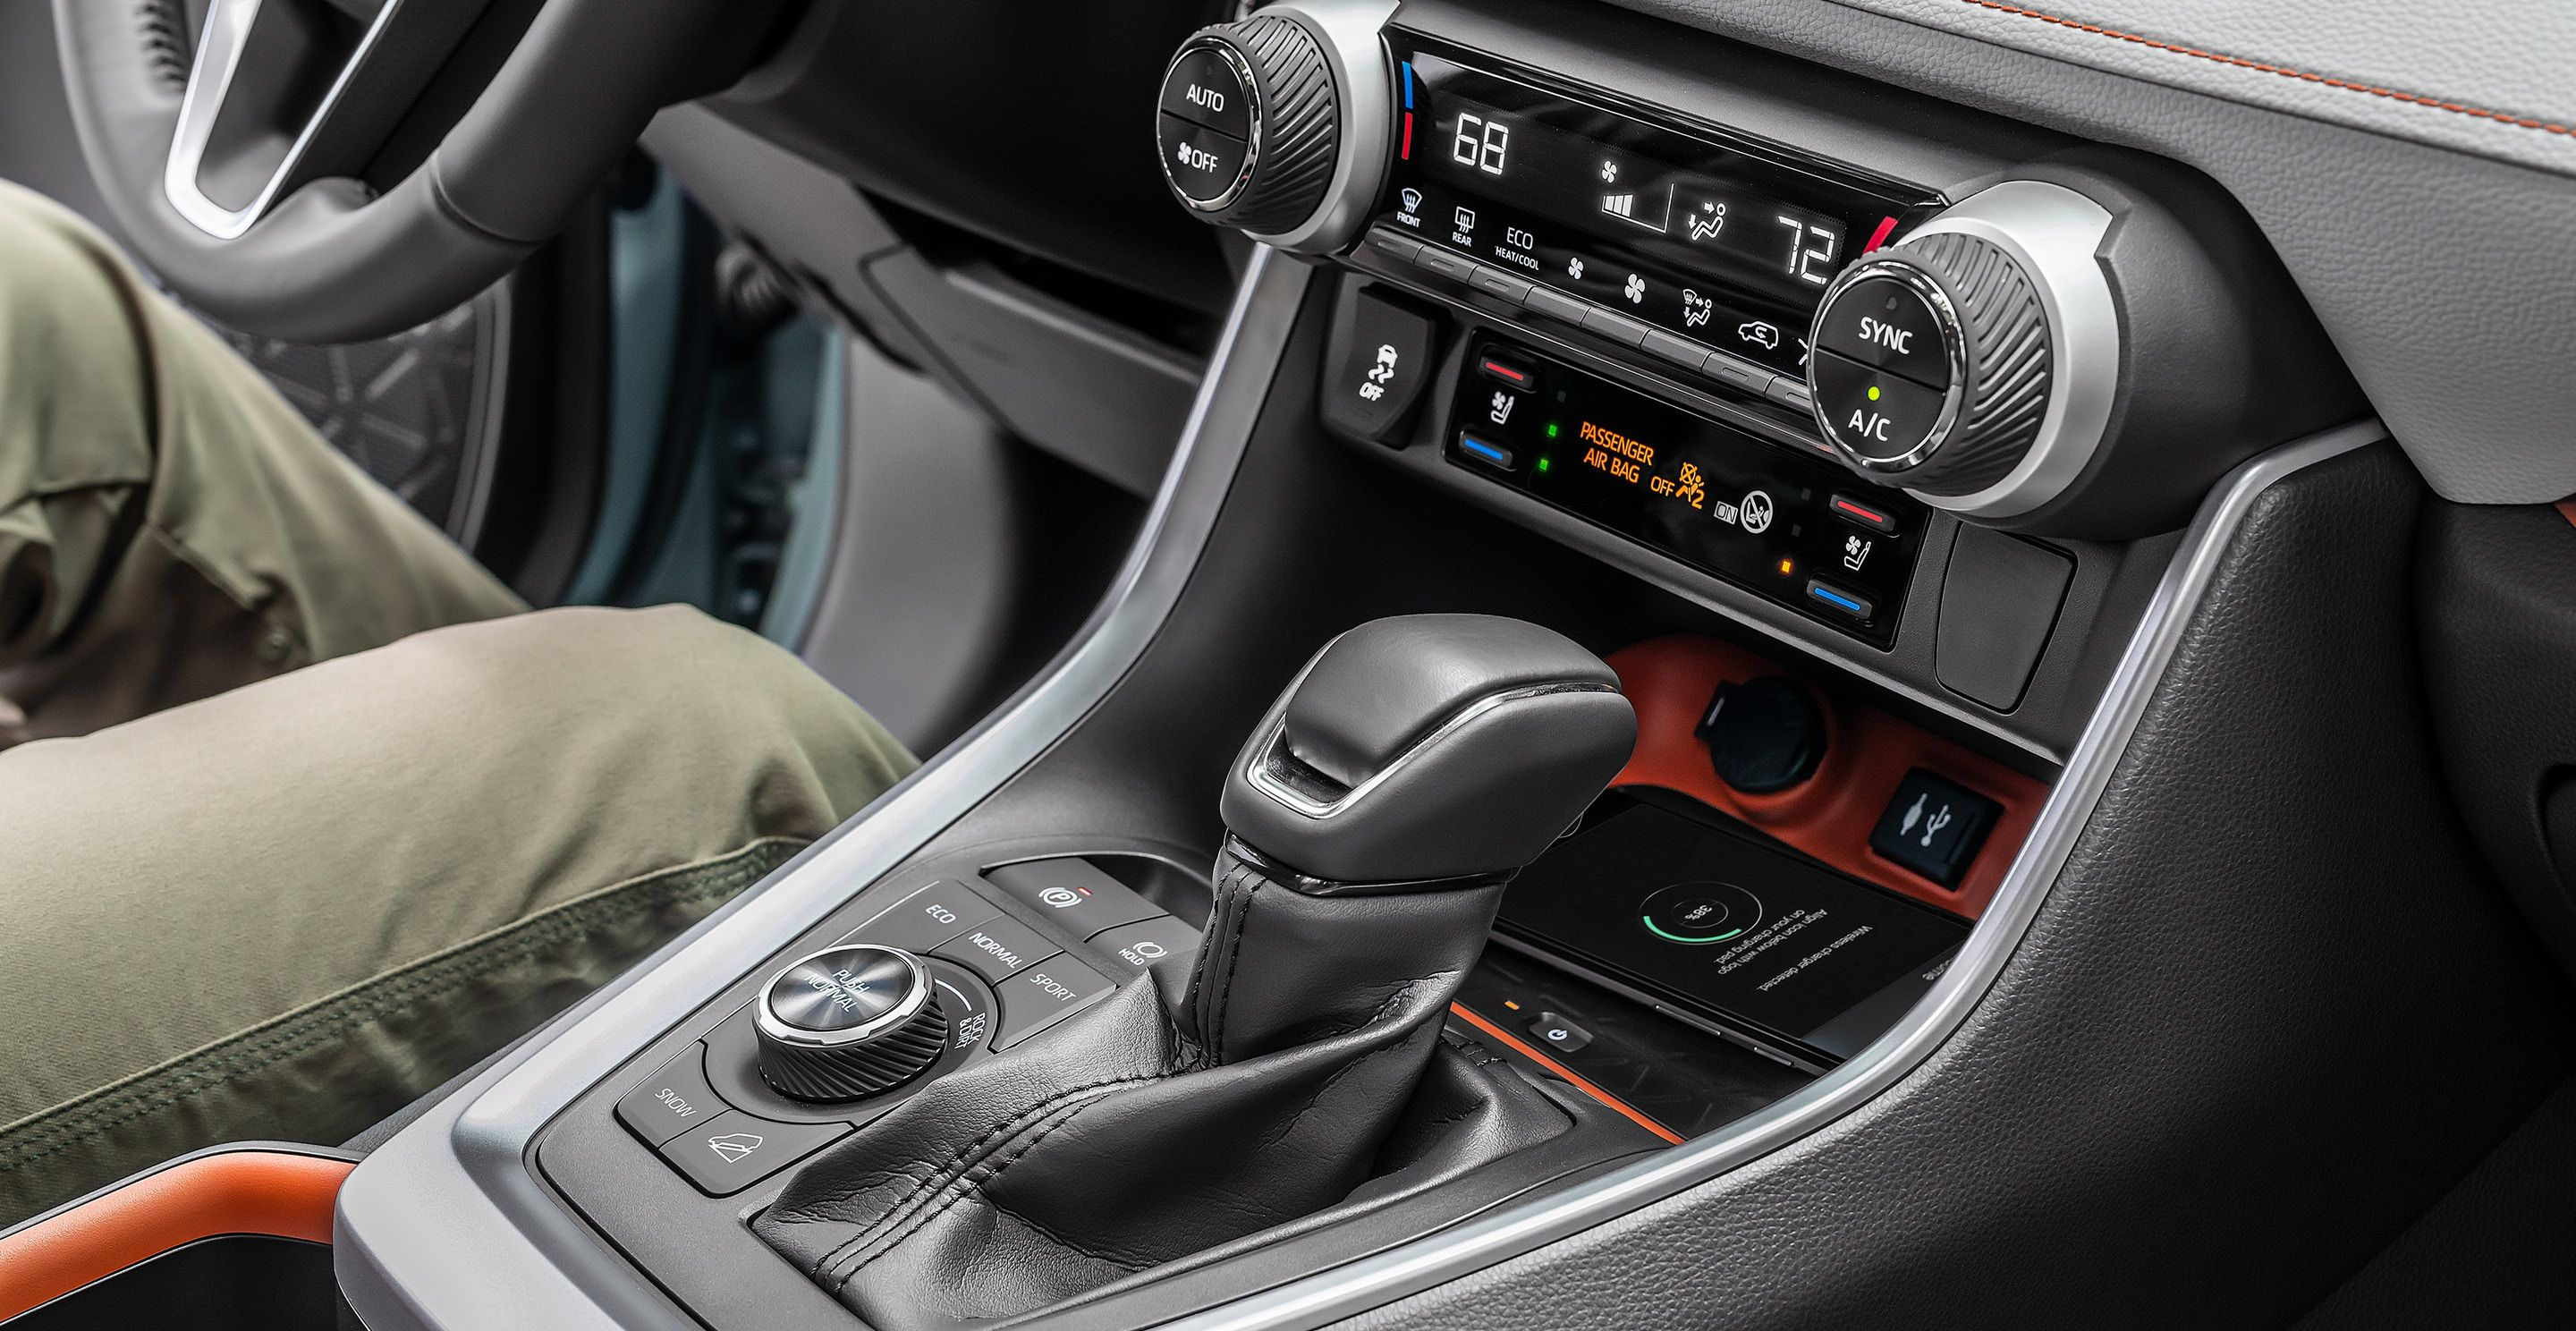 Driving Controls in the 2019 Toyota RAV4